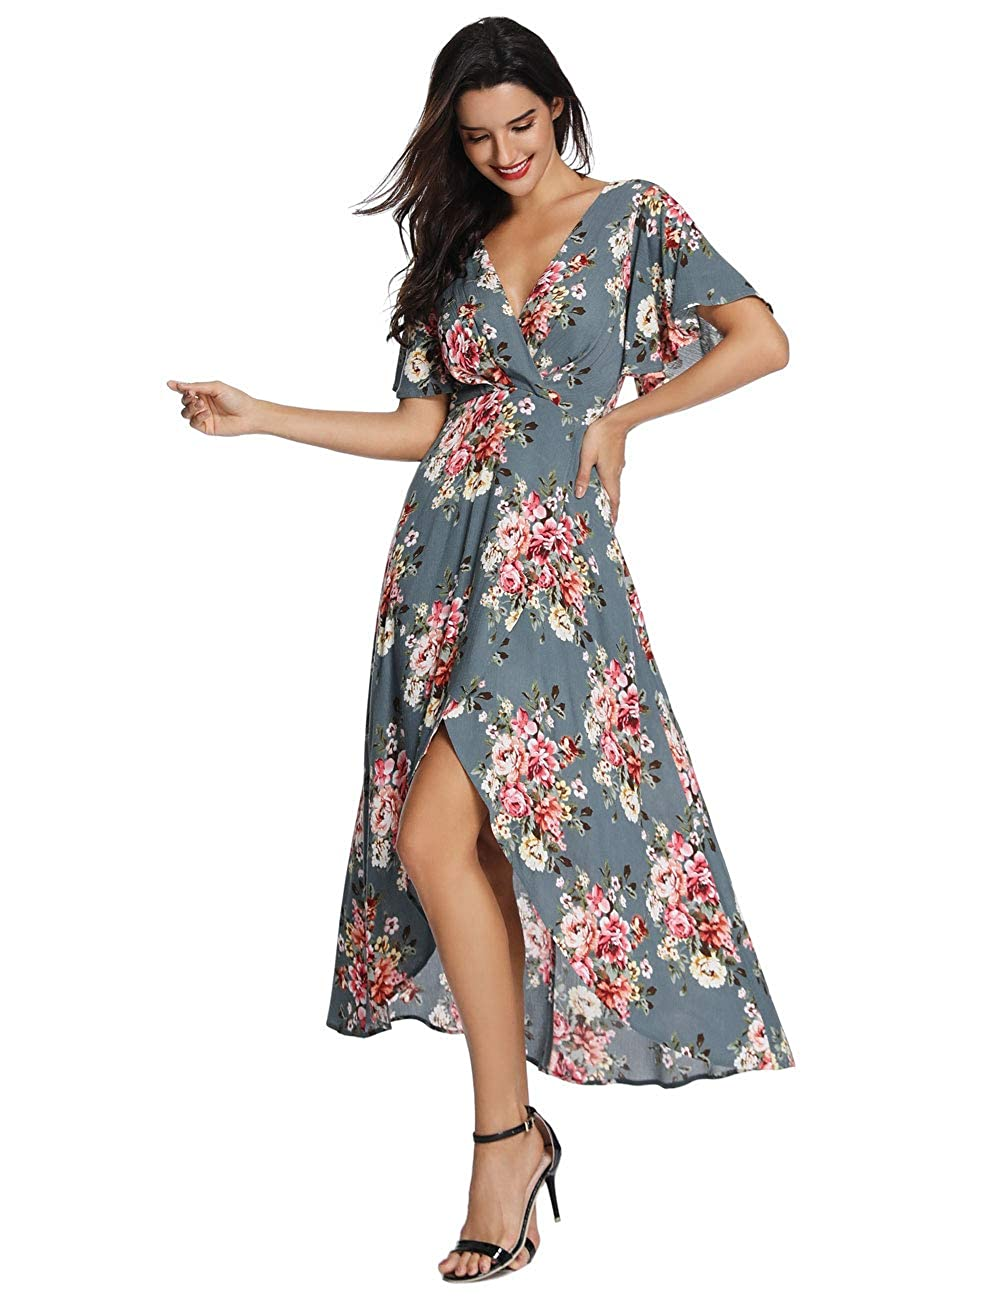 f154b1bf07a2 Azalosie Wrap Maxi Dress Short Sleeve V Neck Floral Flowy Front Slit High  Low Women Summer Beach Party Wedding Dress at Amazon Women s Clothing store